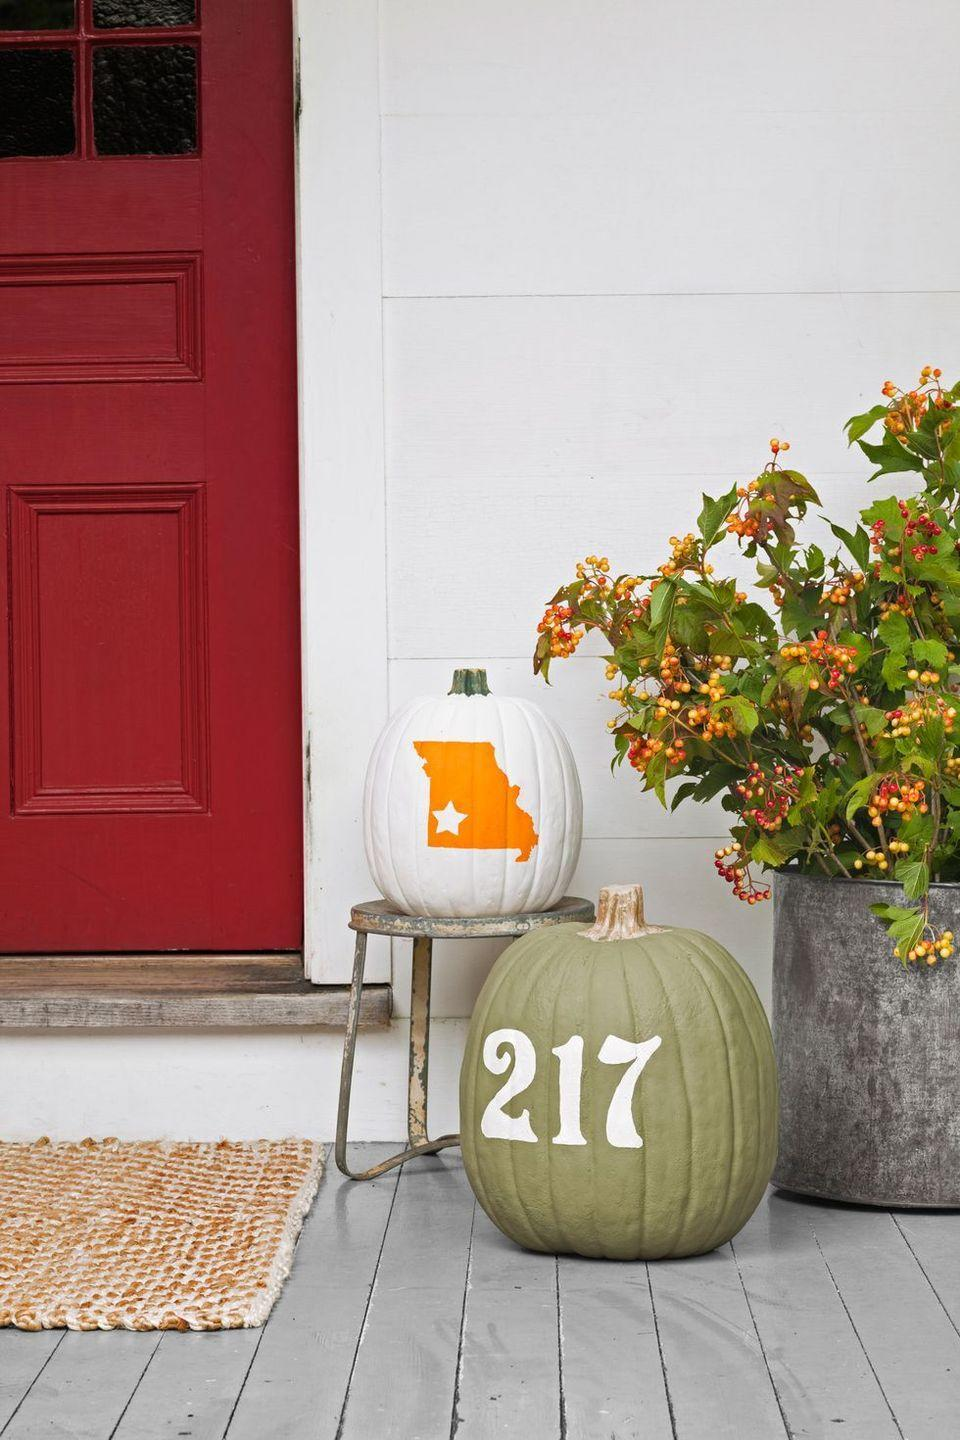 "<p>If you've got tons of hometown pride, then emblazon your state and house number on some pumpkins. First, you'll need <a href=""https://www.amazon.com/Hy-Ko-Prod-MM-4N26-Number-Assortment/dp/B000LNKH8Q/?tag=syn-yahoo-20&ascsubtag=%5Bartid%7C10055.g.4602%5Bsrc%7Cyahoo-us"" rel=""nofollow noopener"" target=""_blank"" data-ylk=""slk:number stickers"" class=""link rapid-noclick-resp"">number stickers</a><em>, </em>as well as a decal in the shape of your state<em>.</em> Use <a href=""https://www.amazon.com/Fiskars-Corporation-Star-Punch-23537097J/dp/B071XGD7YC/?linkCode=ogi&tag=countryliving_auto-append-20&ascsubtag=[artid